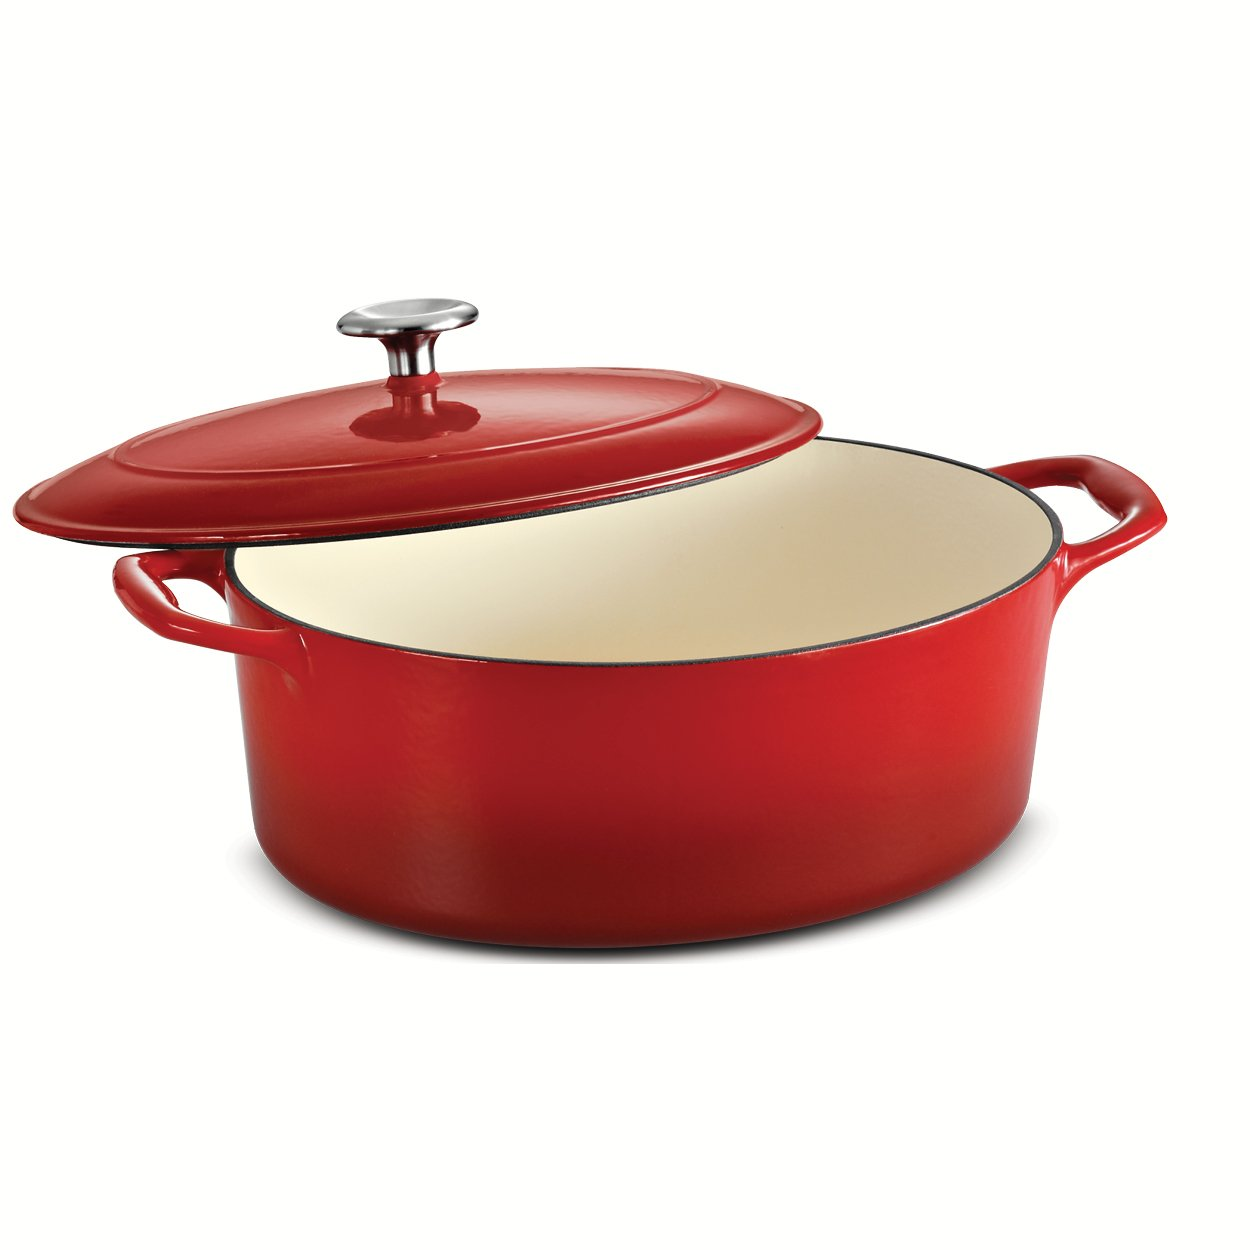 Tramontina 80131/051DS Enameled Cast Iron Covered Oval Dutch Oven, 5.5-Quart, Gradated Red